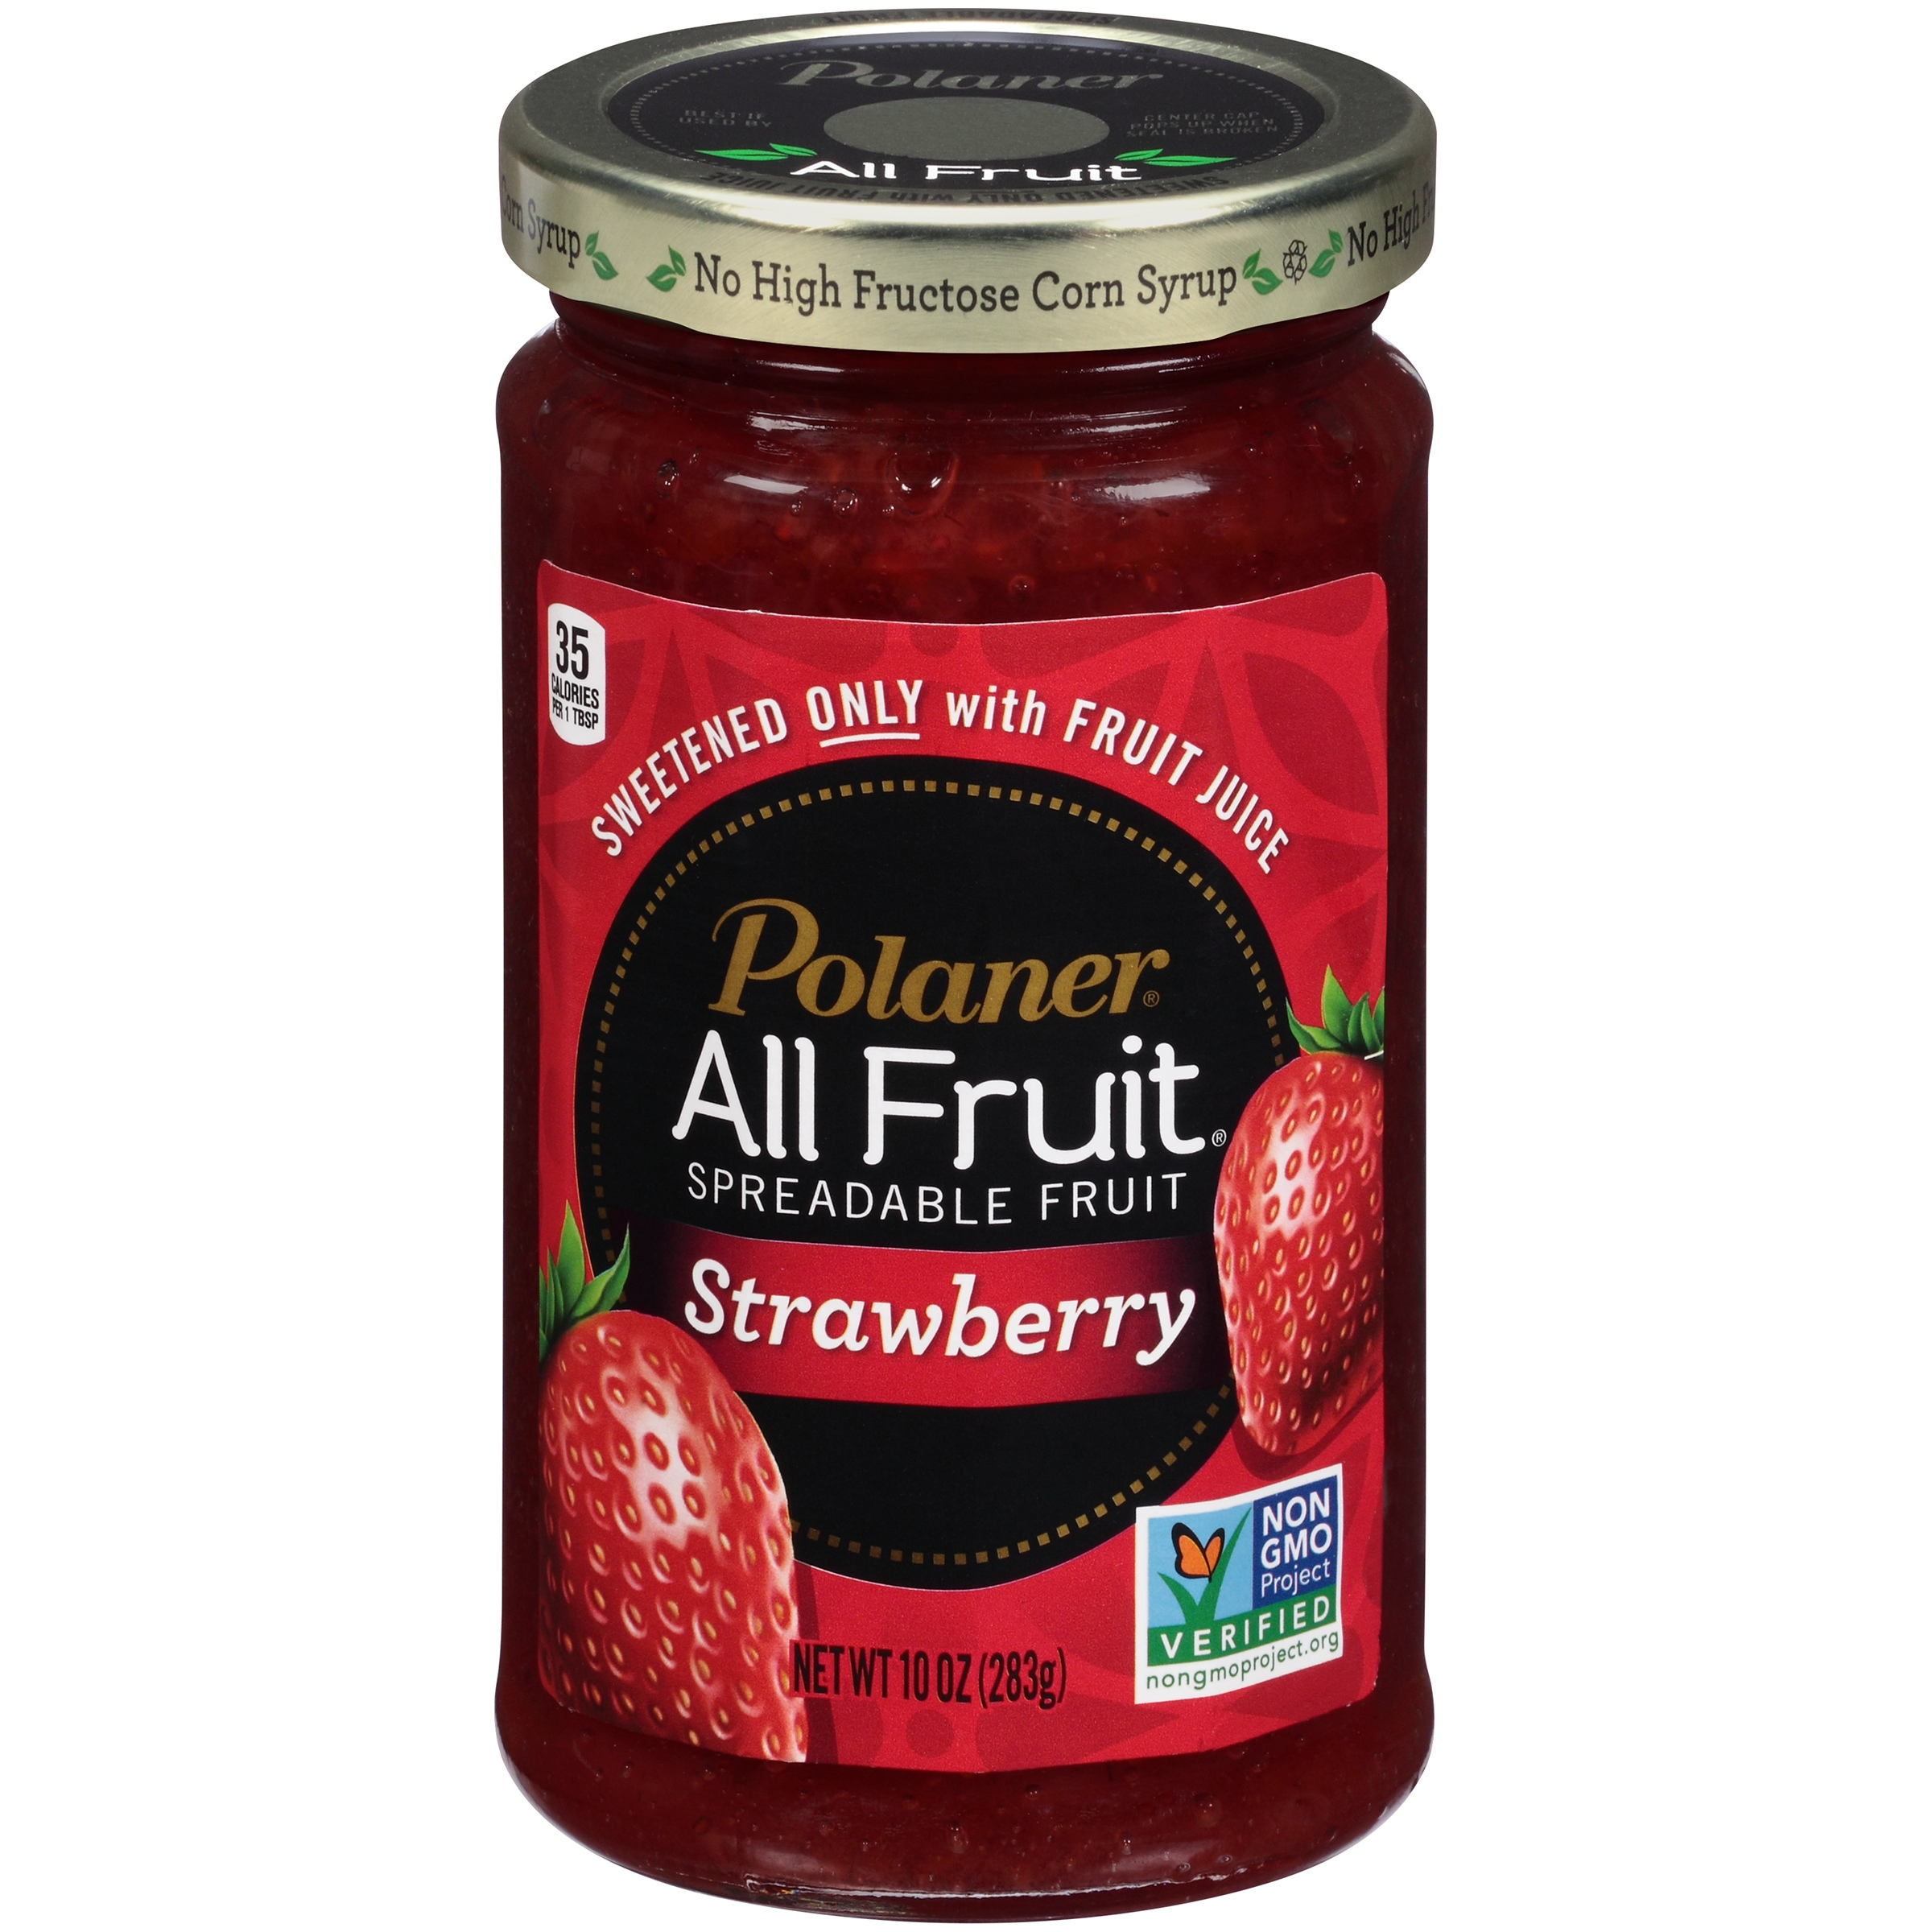 Polaner® All Fruit® Strawberry Spreadable Fruit 10 oz. Jar